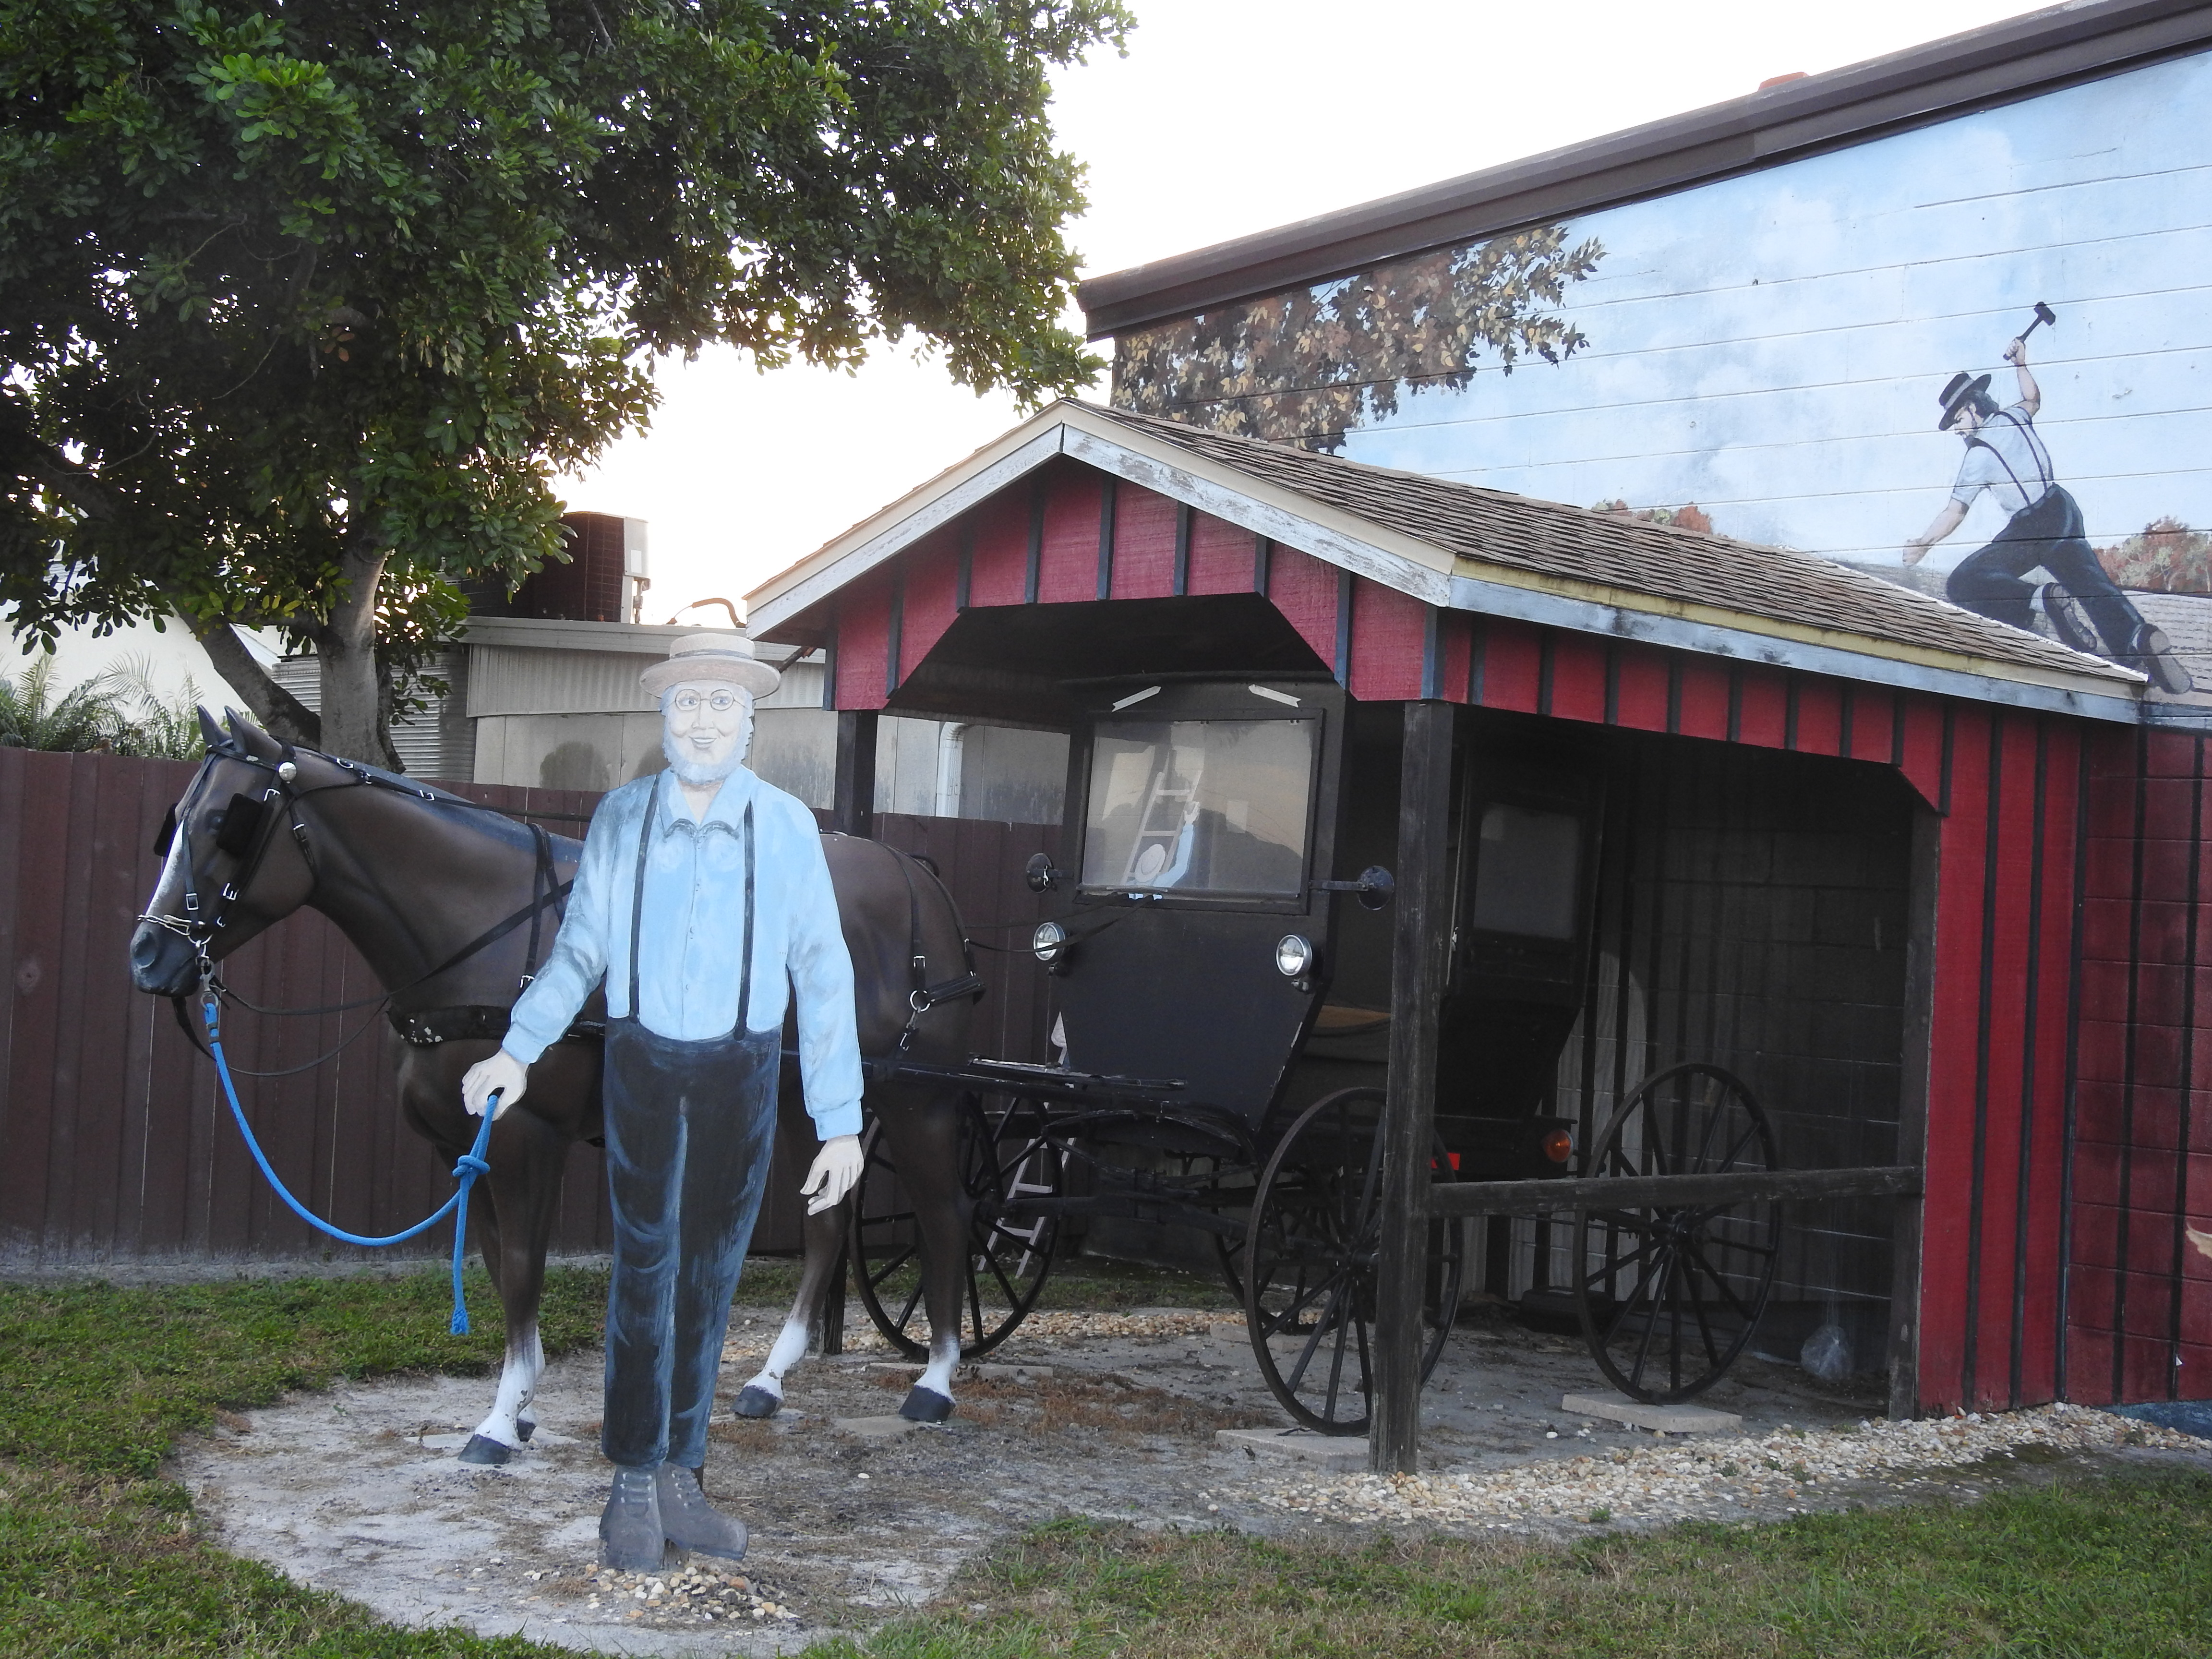 Yoder's restaurant provides the Amish food experience